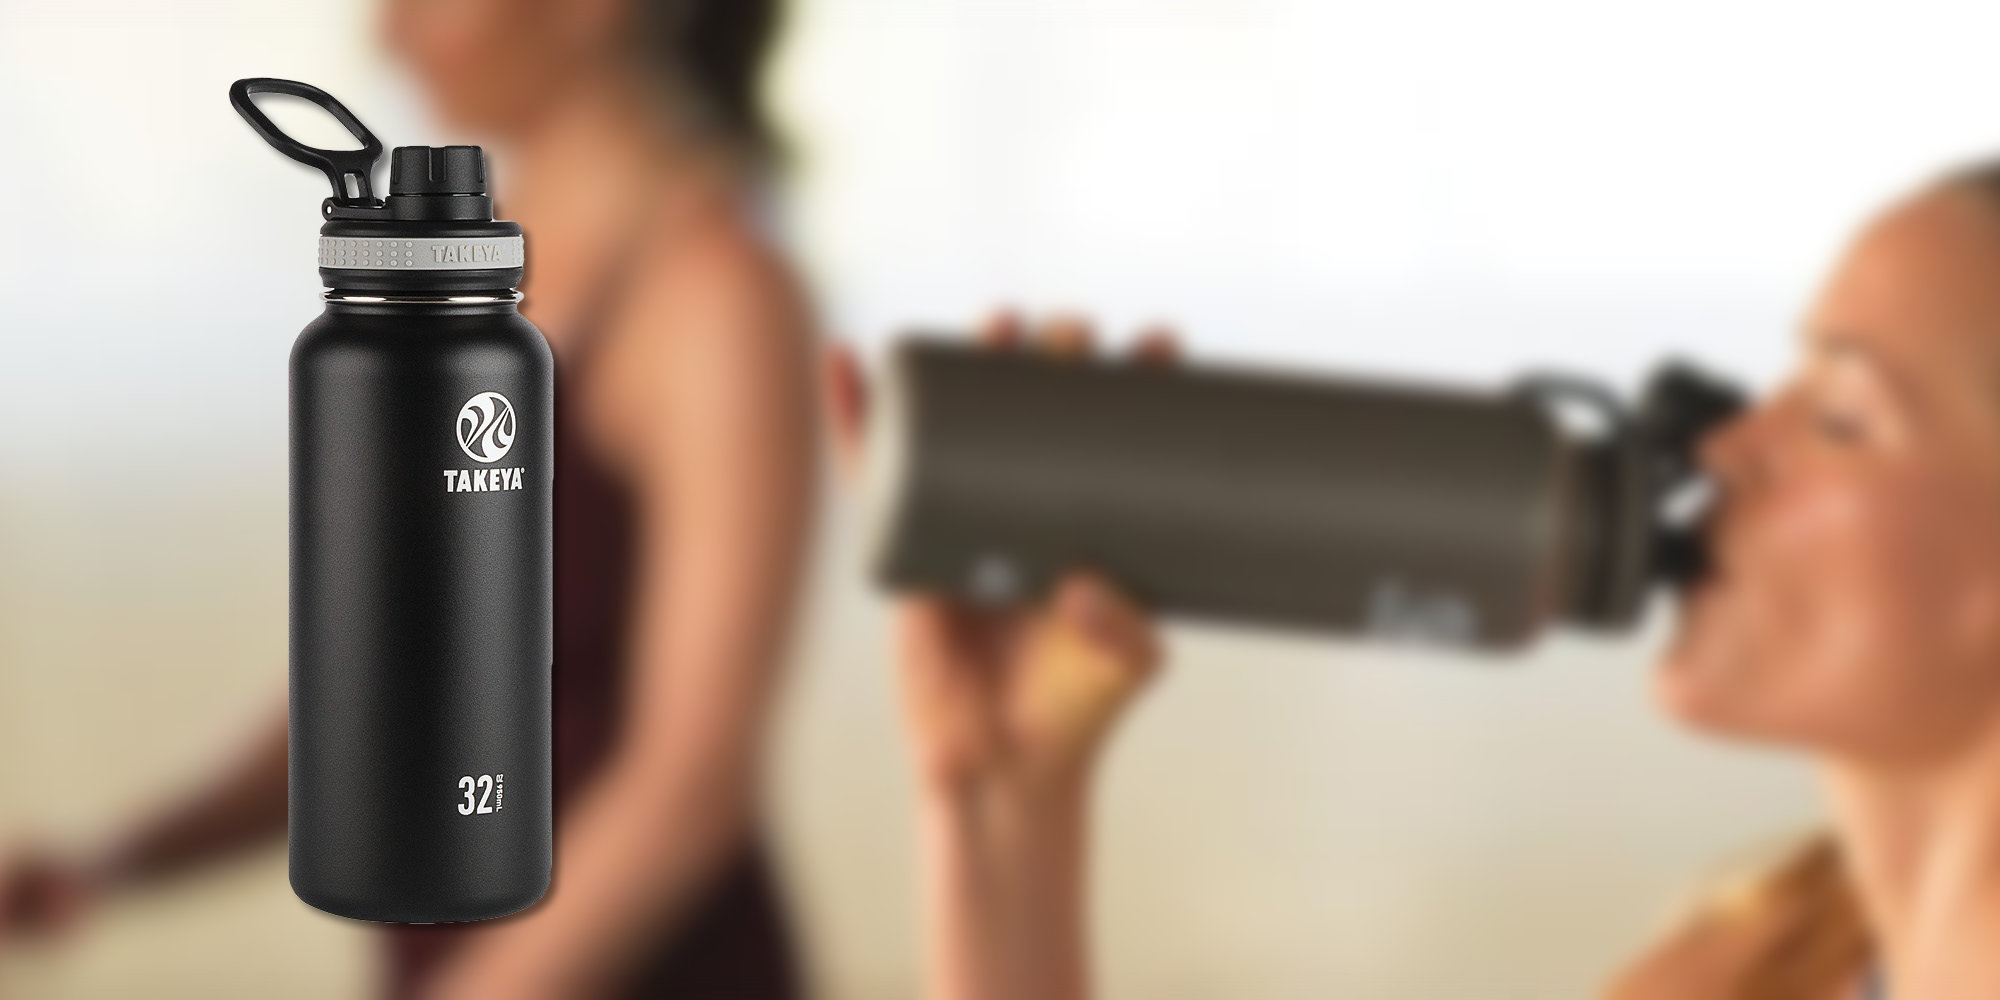 Takeya's Stainless Steel 32-ounce Bottle maintains temps for up to 24 hours: $19 (Reg. $25)